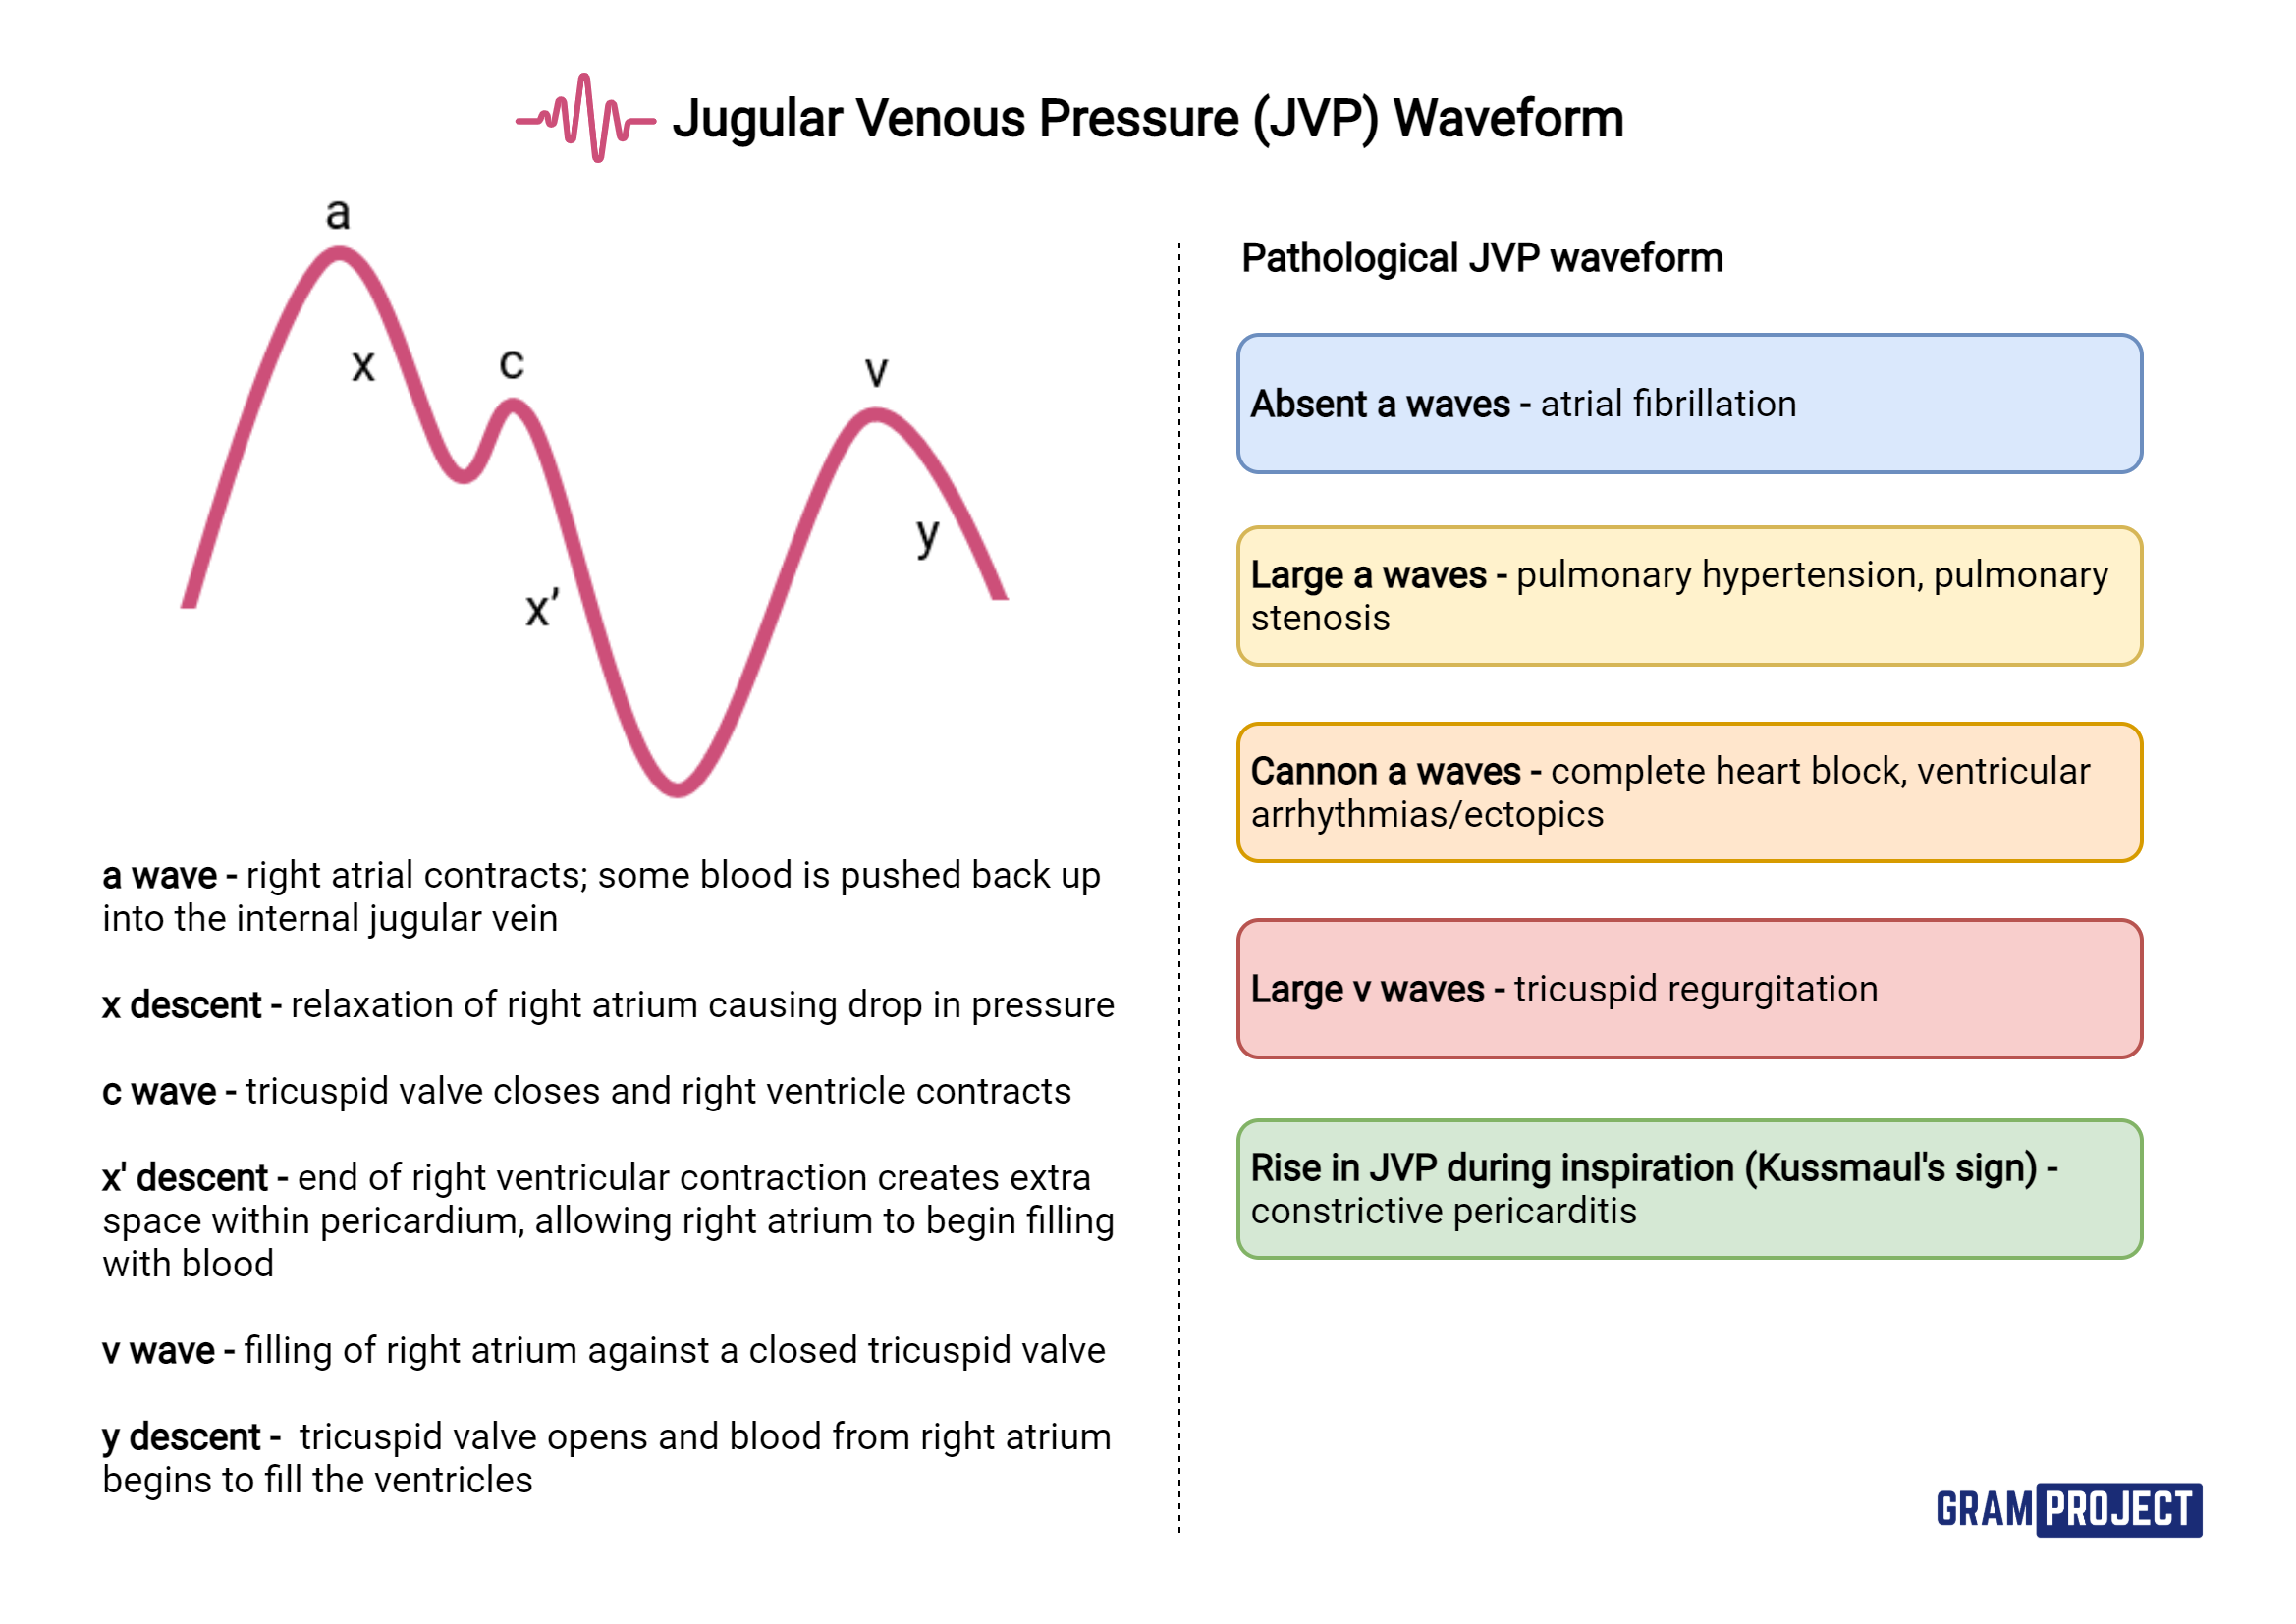 Basics of the JVP waveform and pathologies associated with it